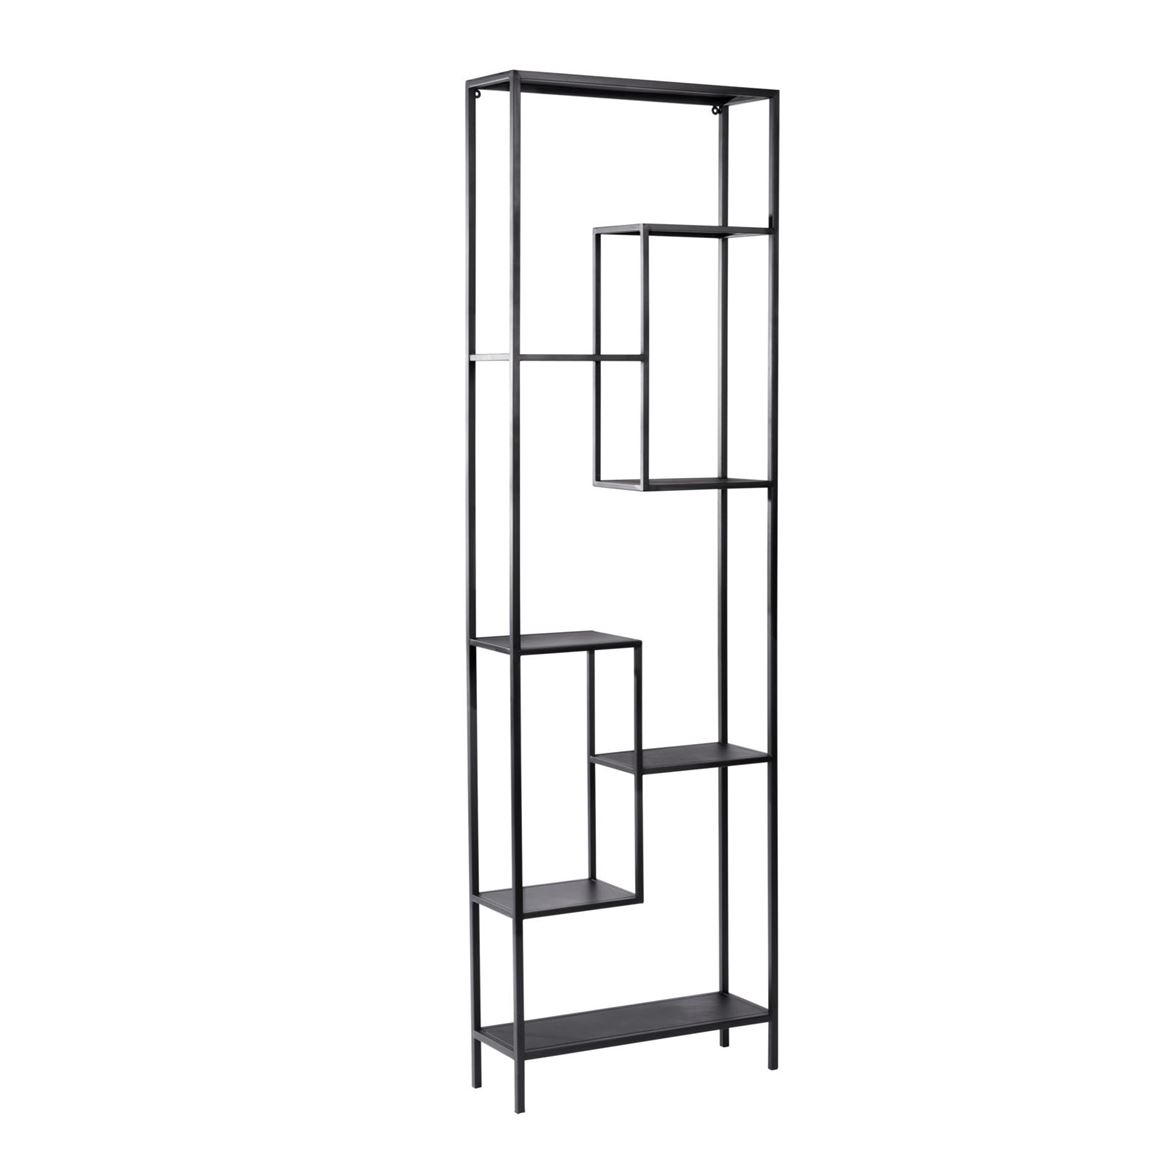 WILLIAM Scaffale da parete nero H 200 x W 60 x D 20 cm_william-scaffale-da-parete-nero-h-200-x-w-60-x-d-20-cm